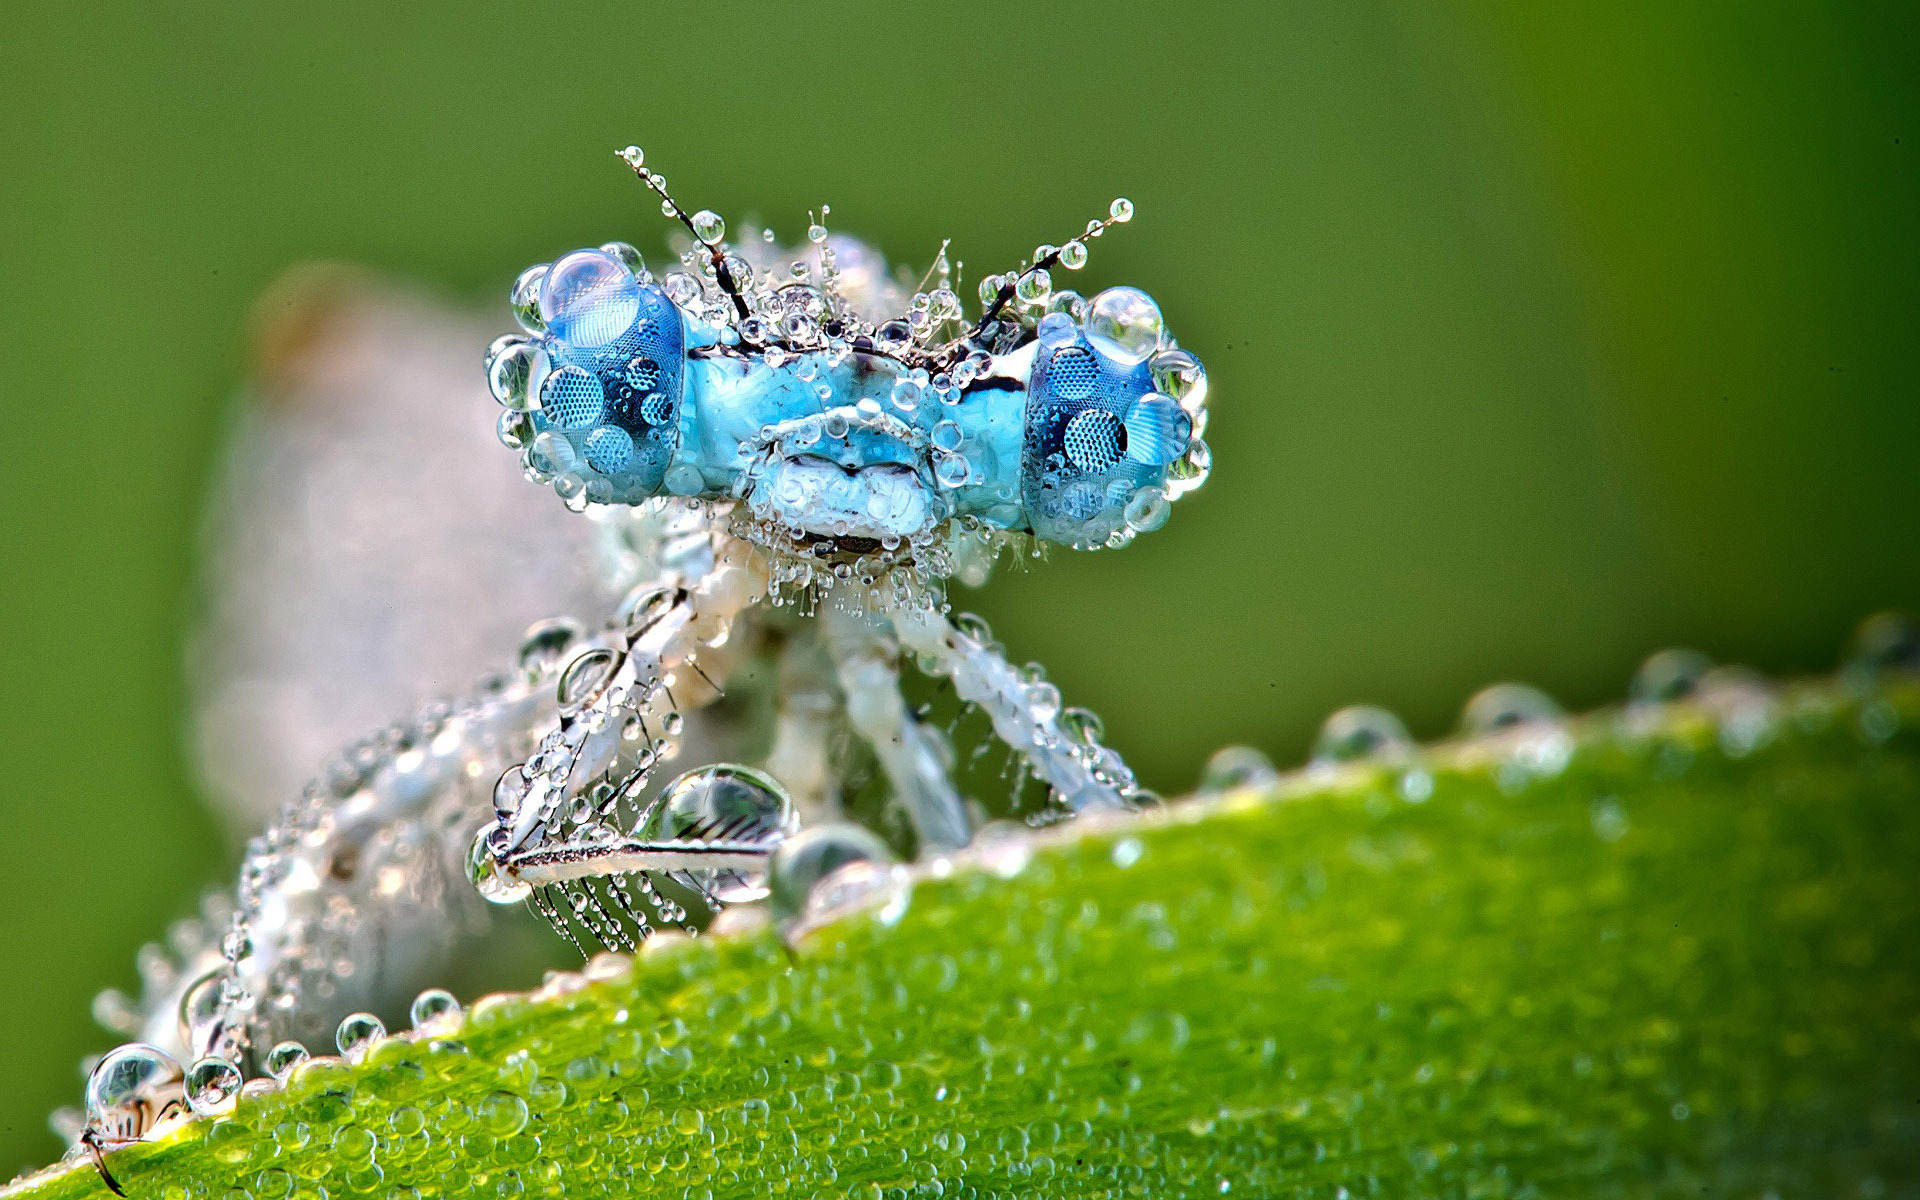 Hd Wallpapers Backgrounds: Dragonfly HD Wallpapers